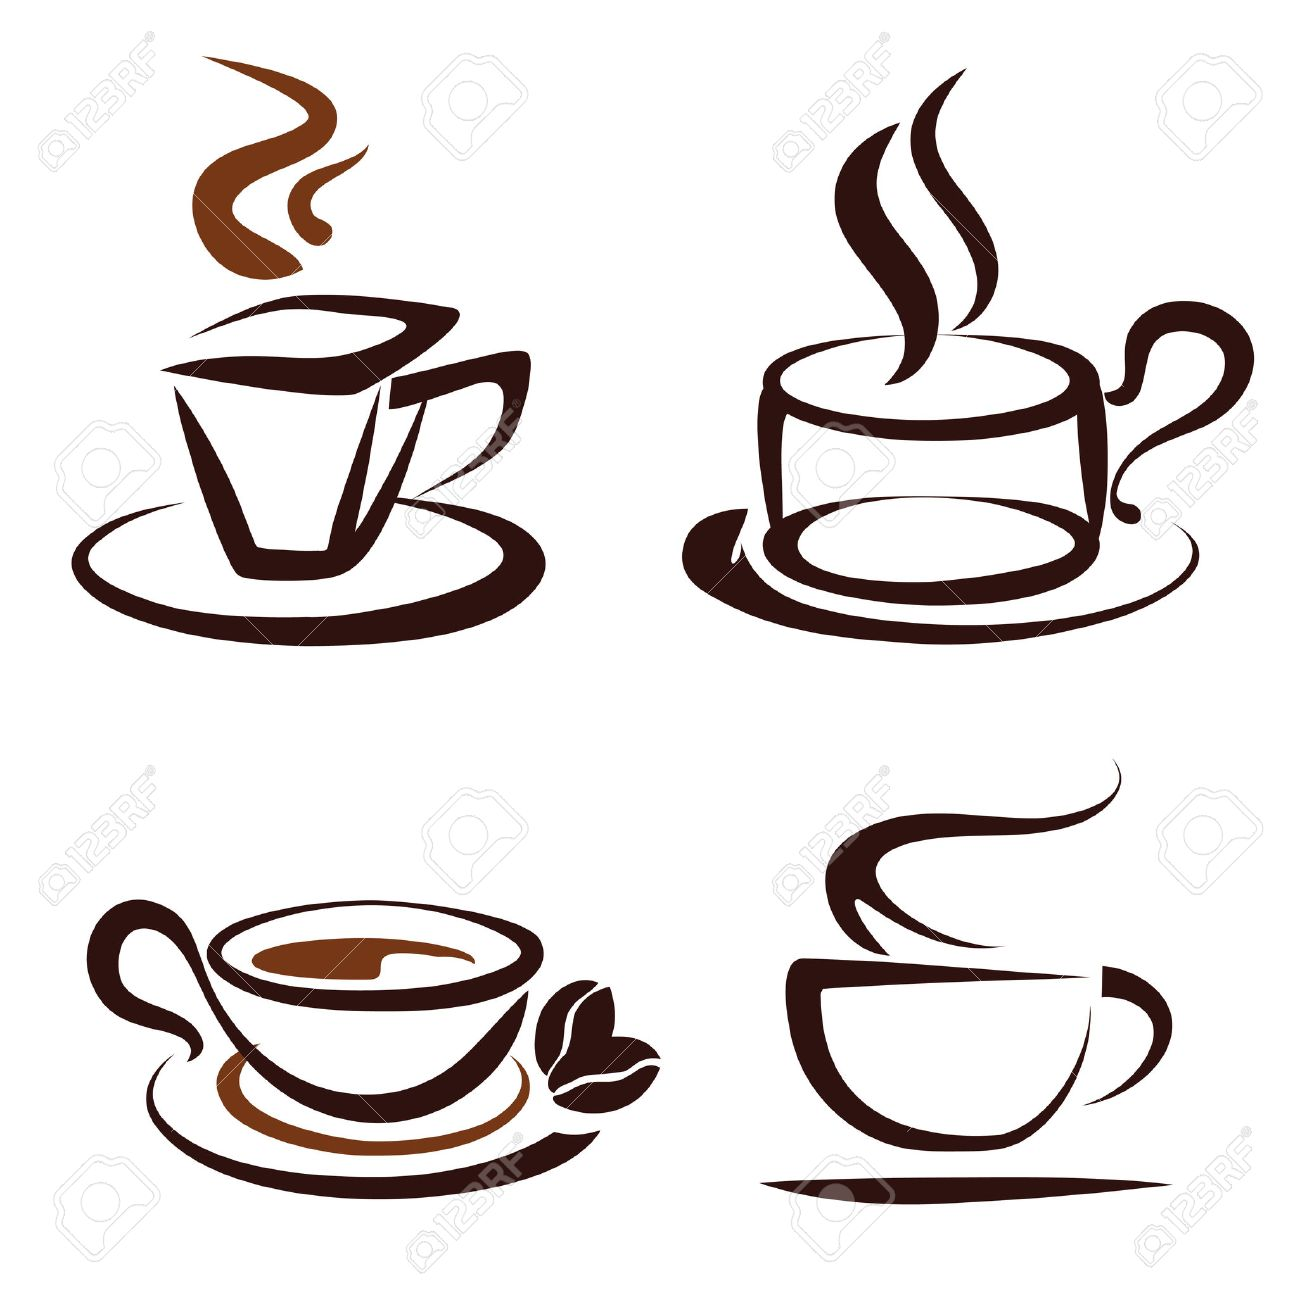 Coffee cup sketch - Vector Set Of Coffee Cups Icons Stylized Sketch Symbols Stock Vector 22337937